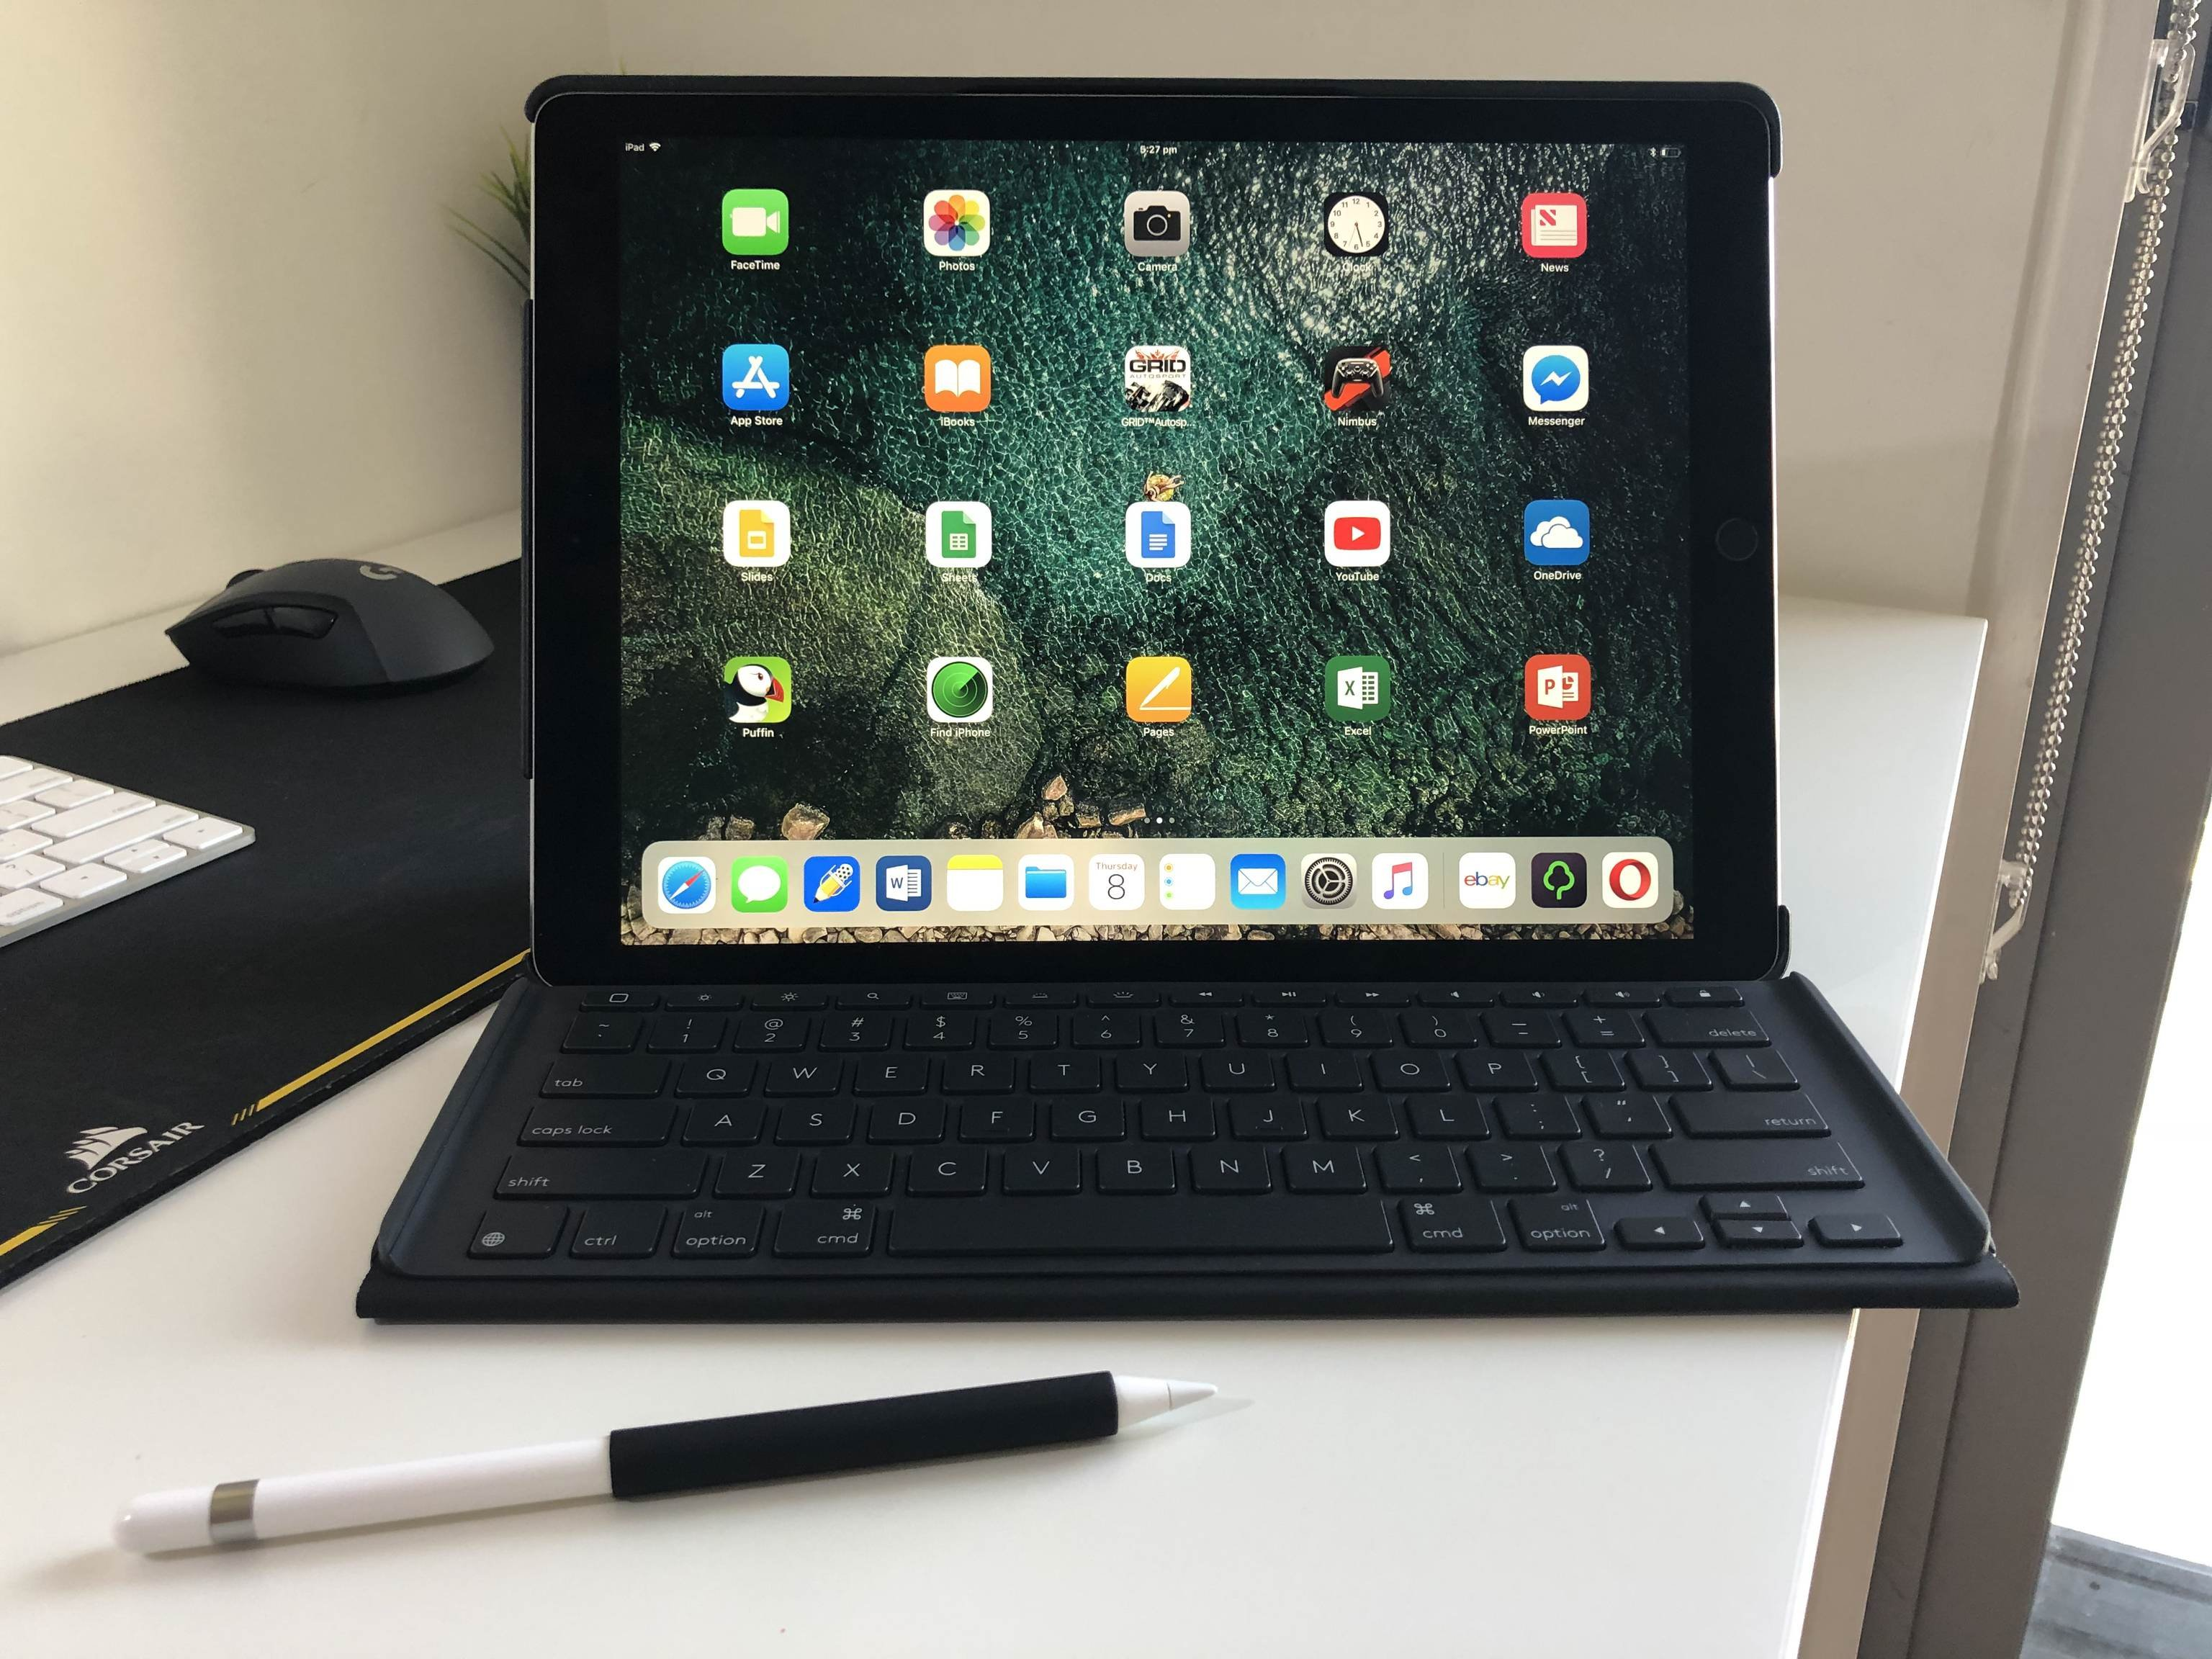 Logi slim combo looks so much cleaner on iPad Pro without the pen loop. 👌 logi-slim-combo-looks-so-much-cleaner-on-ipad-pro-without-the-pen-loop-👌